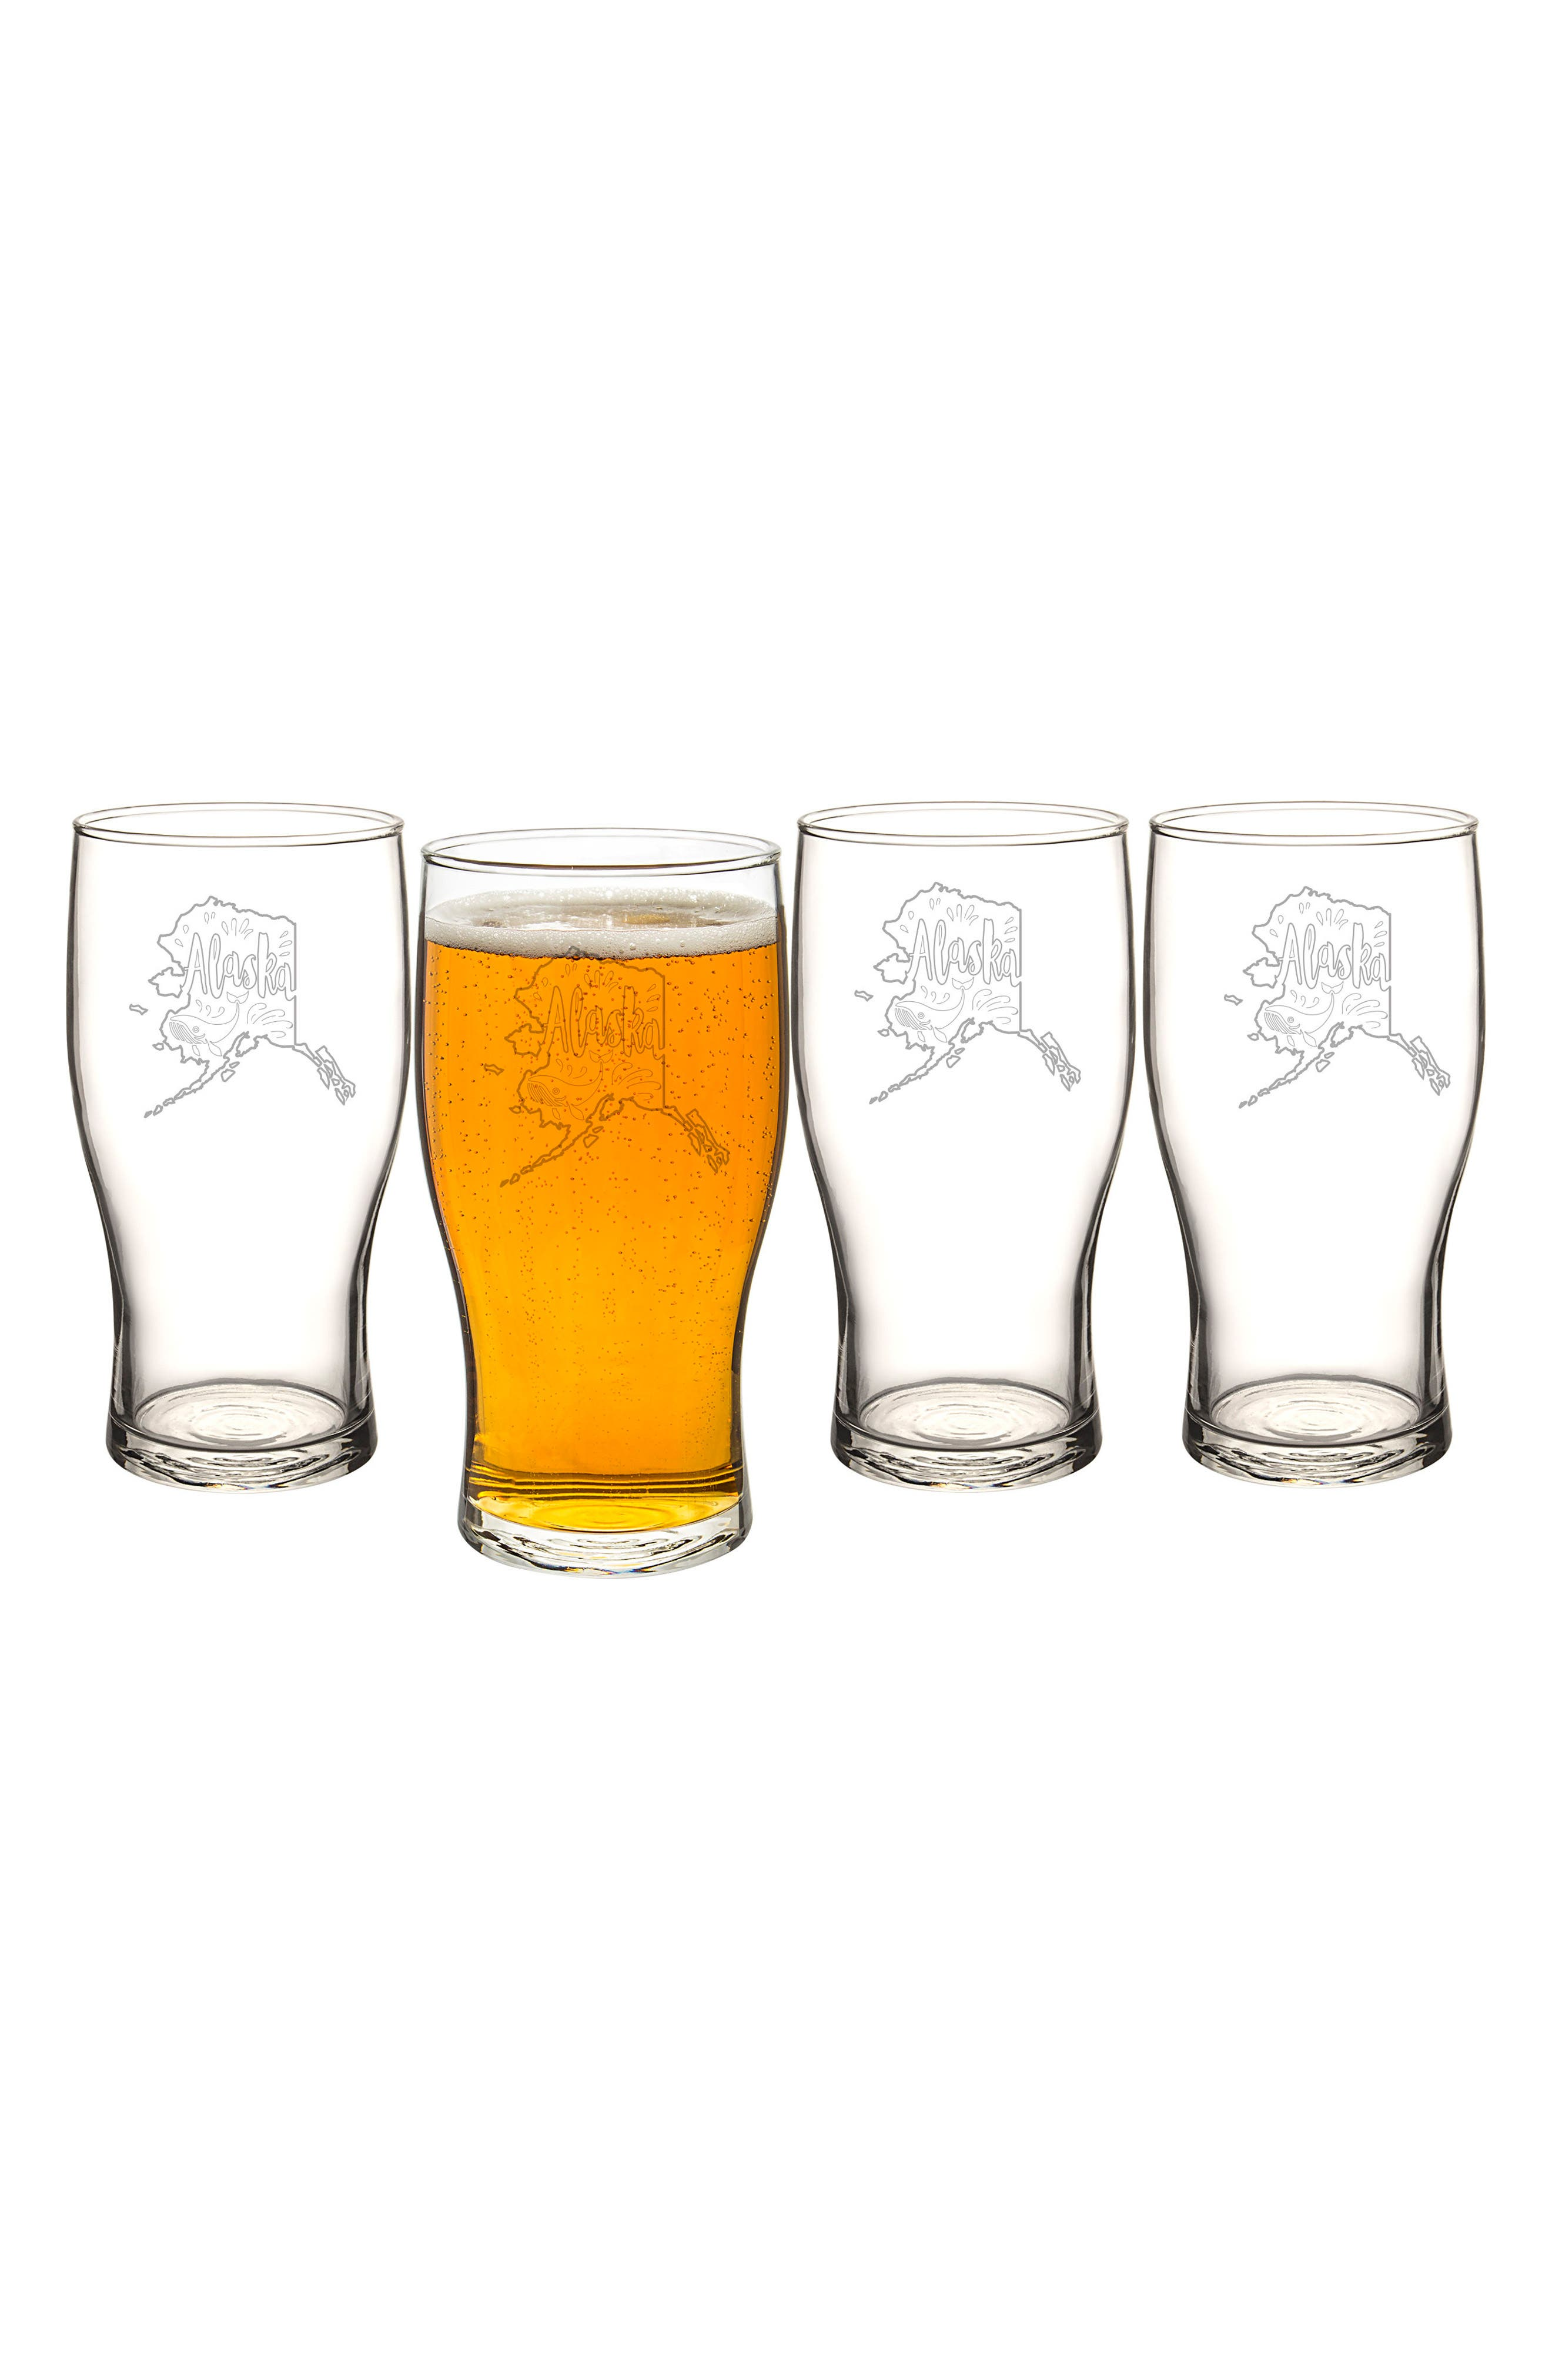 State Set of 4 Pilsner Glasses,                             Main thumbnail 1, color,                             100